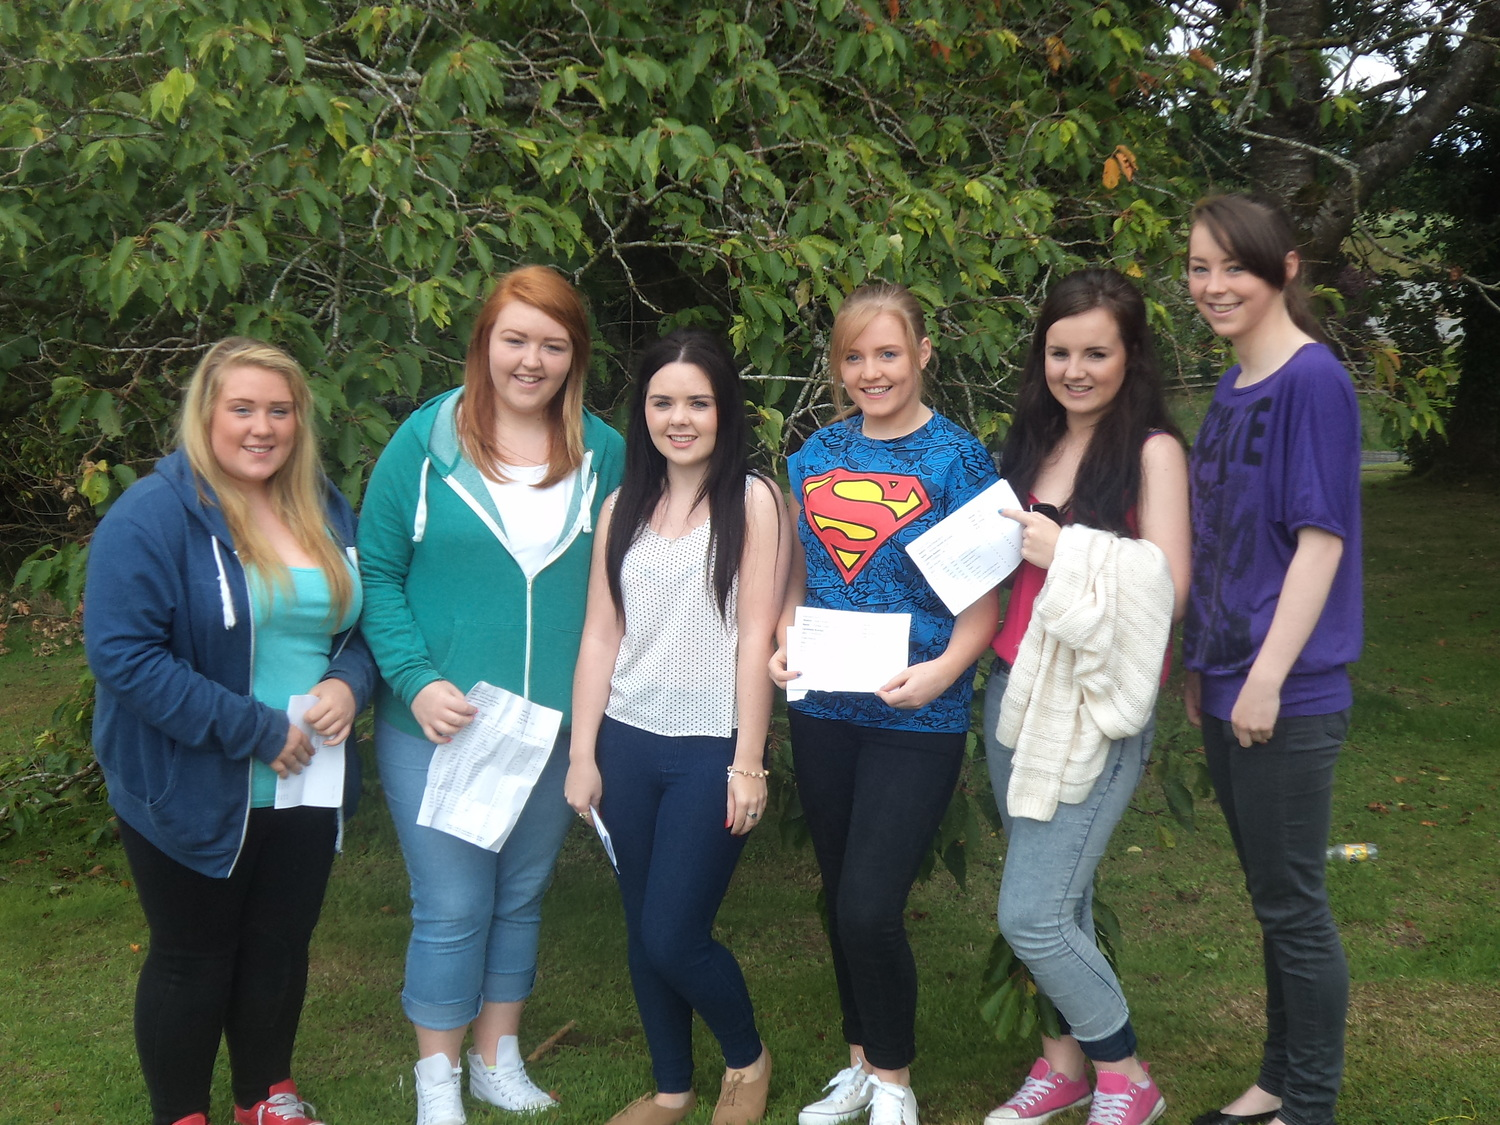 Pupils from St John's Business and Enterprise College on GCSE results day 2013